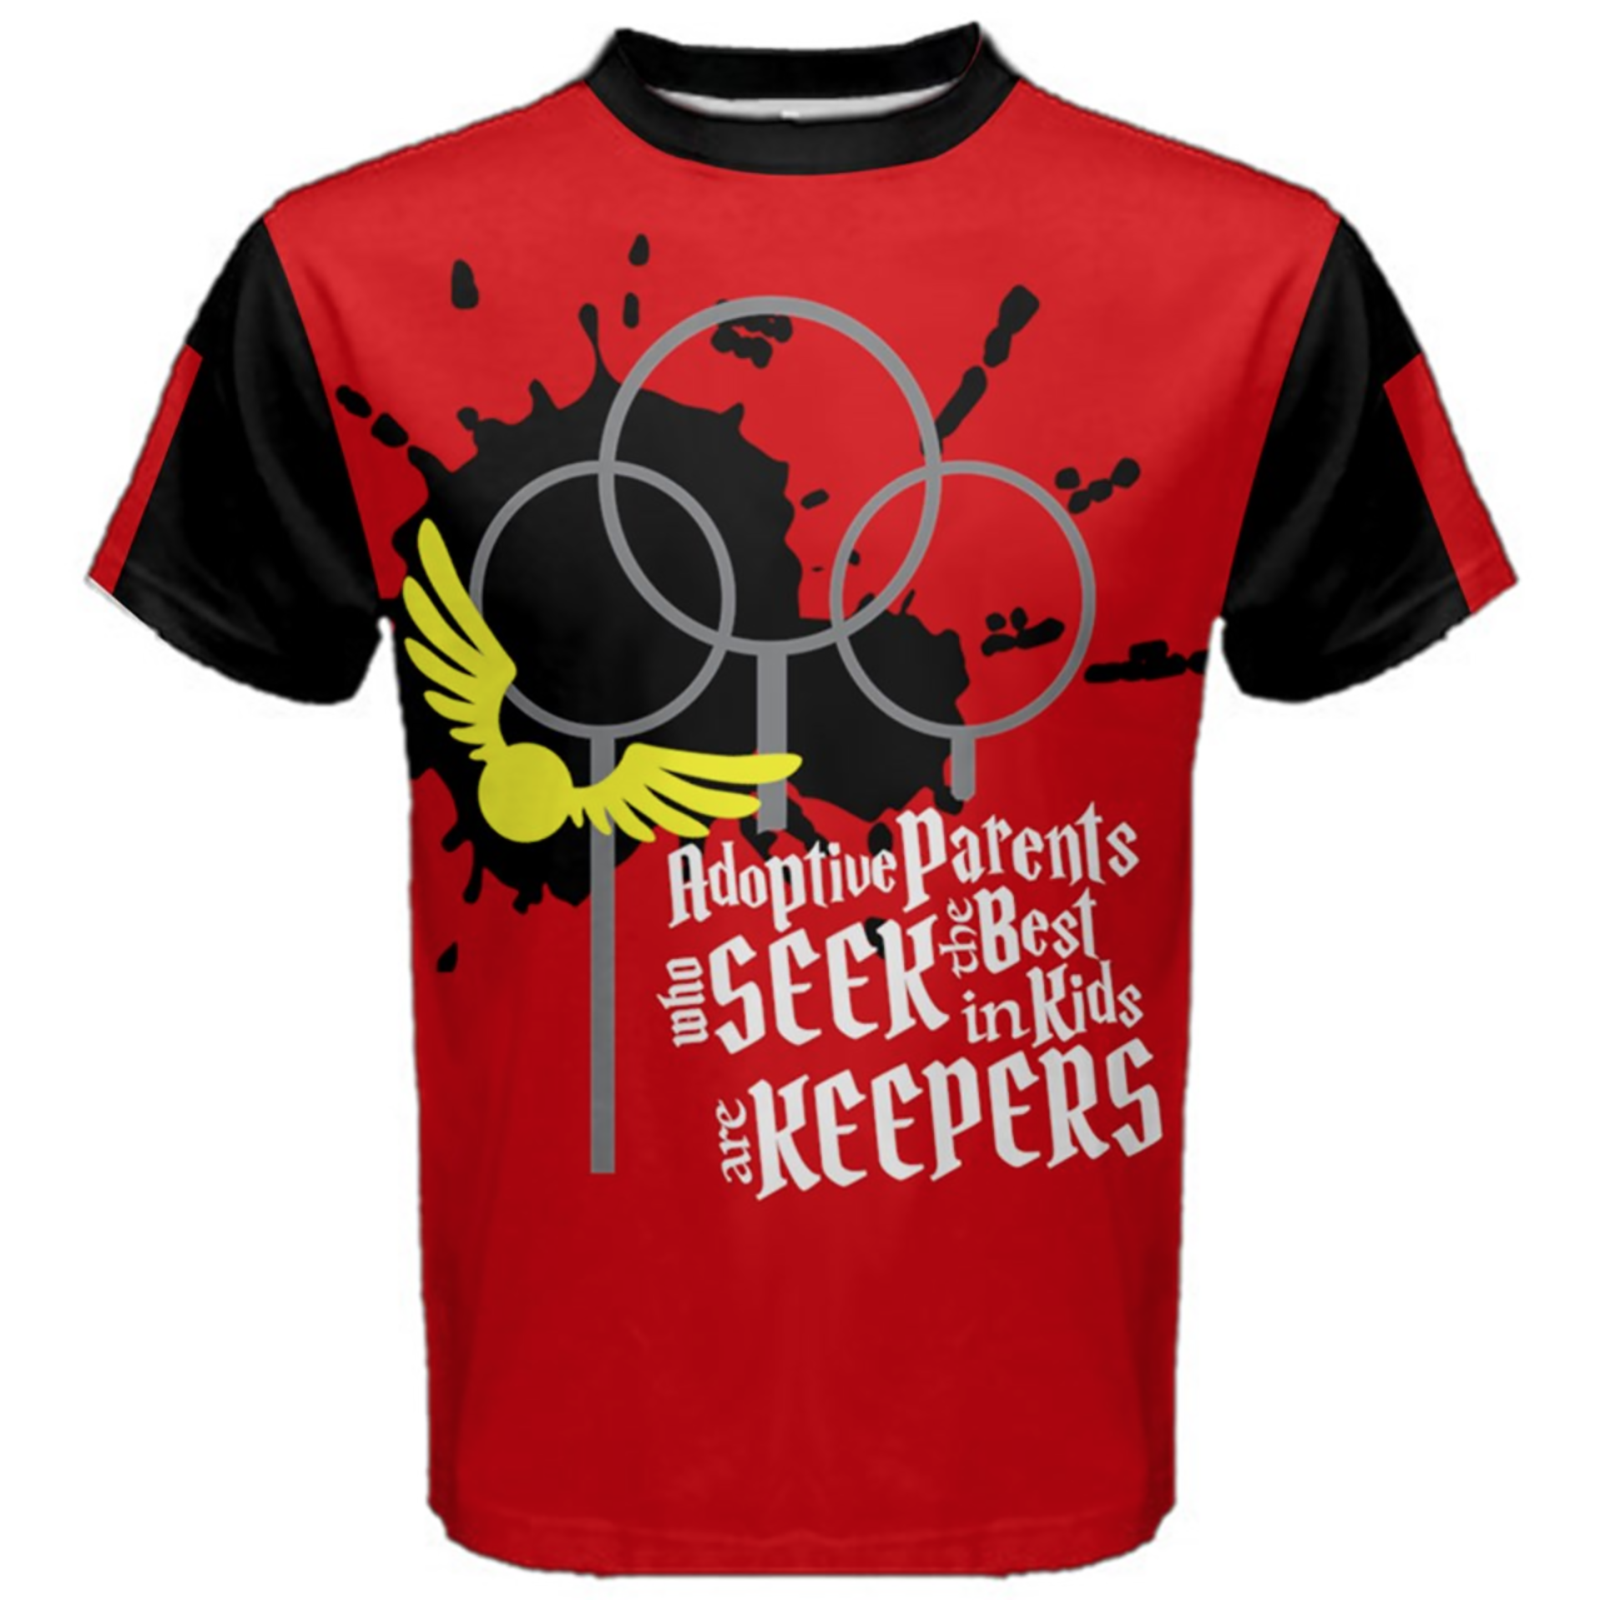 "Magical Sports Design Cotton Tee - ""Adoptive Parents Who SEEK The Best In Kids Are KEEPERS"""